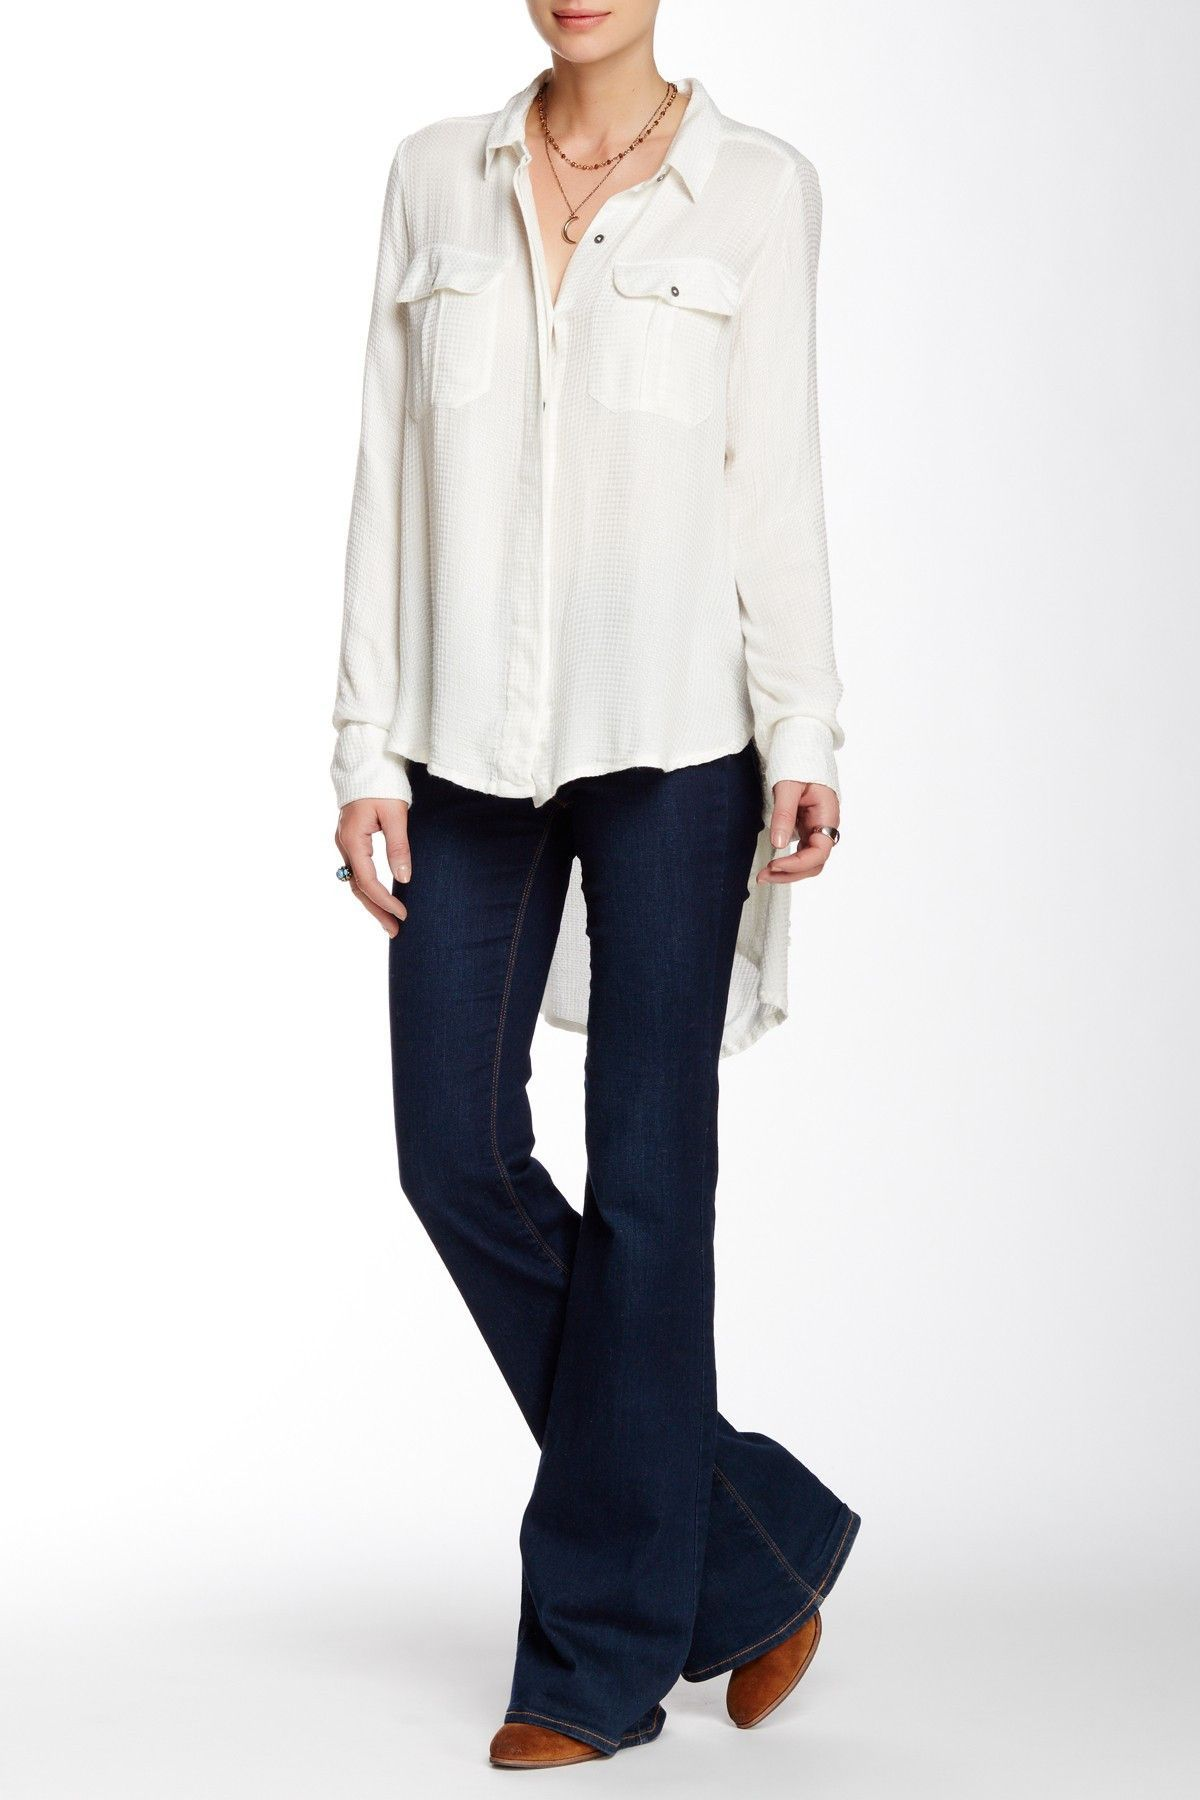 Free People One of the Guys Button Front Shirt in Ivory, Size XS